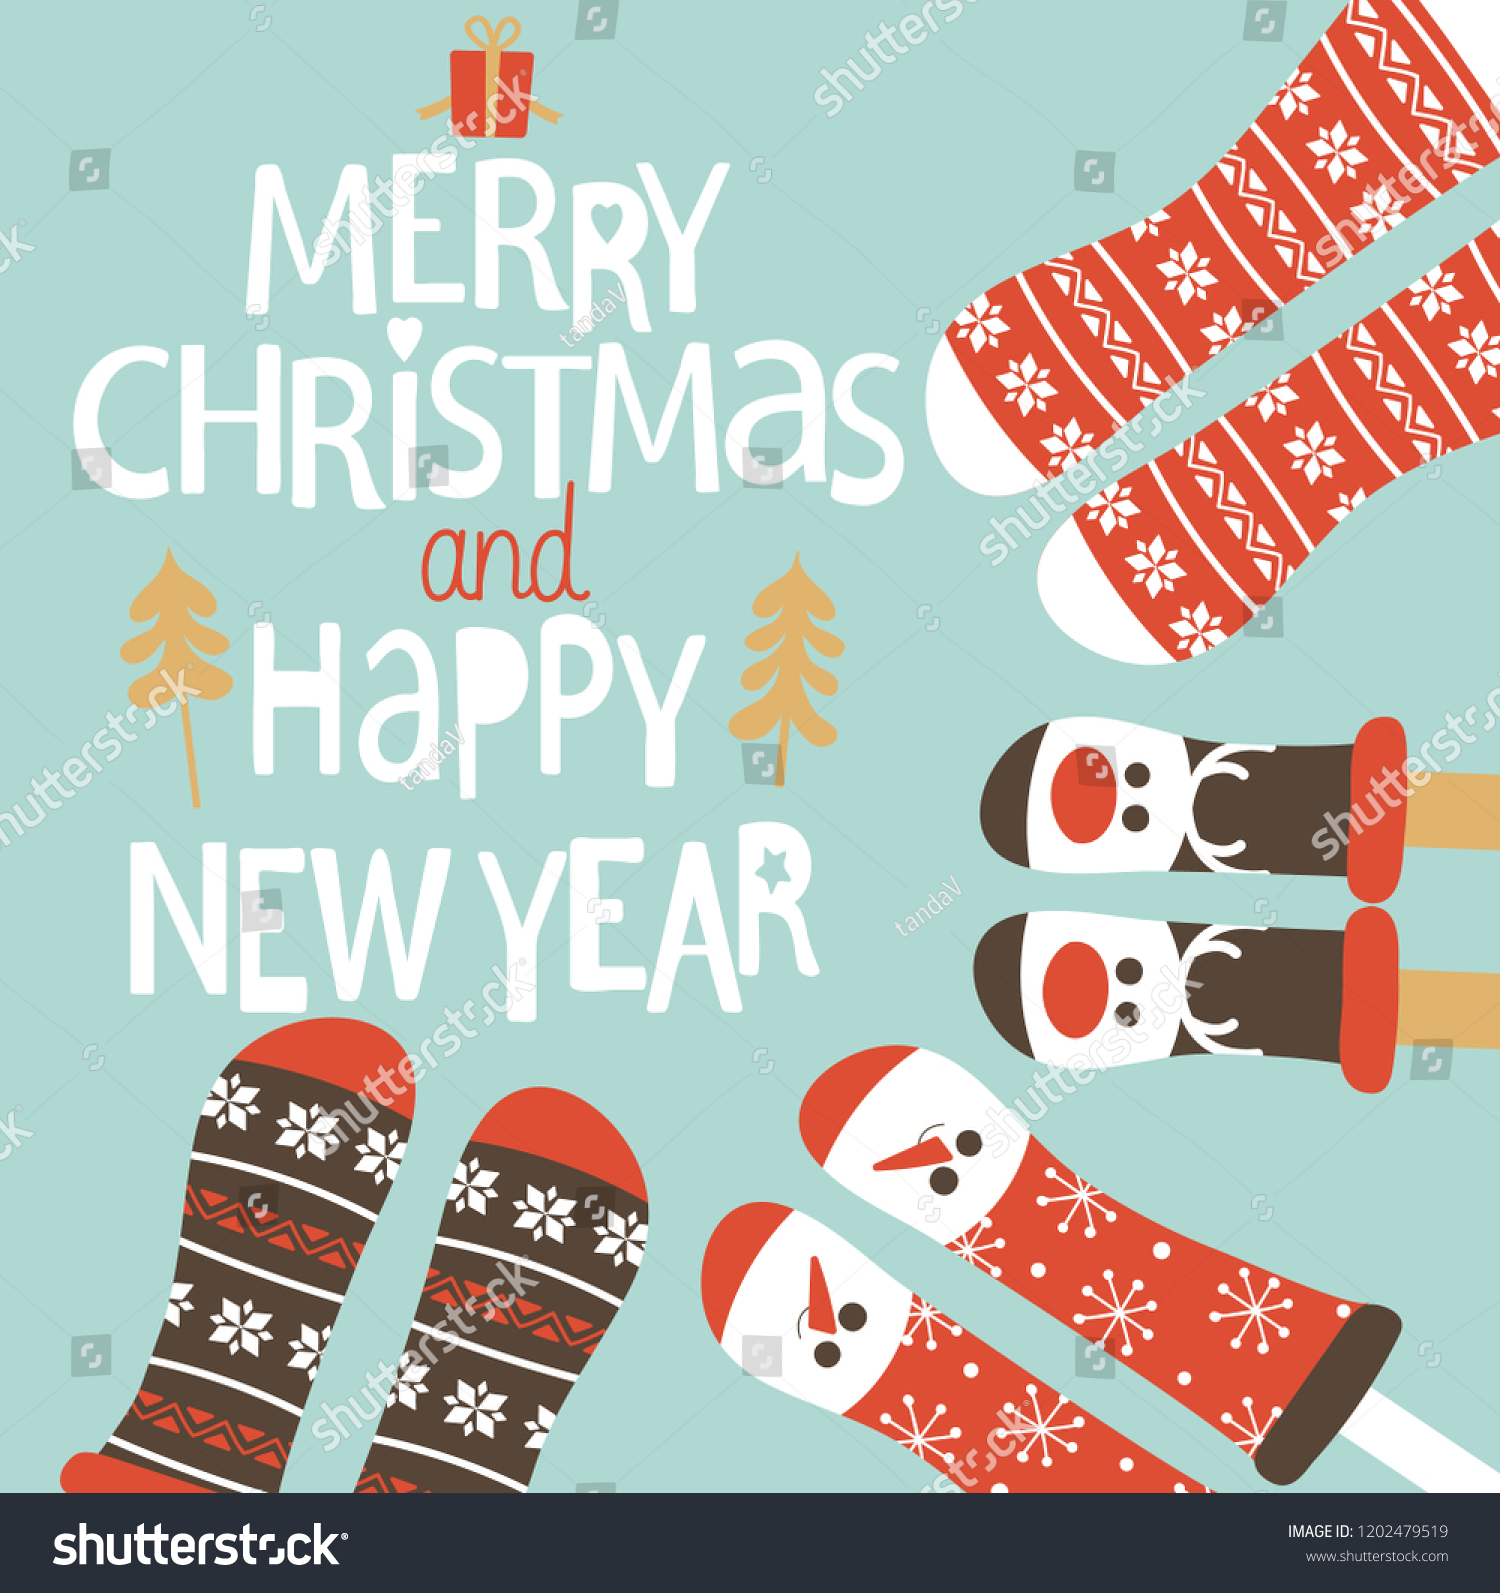 happy new year and merry christmas greeting card family feet in christmas socks round the